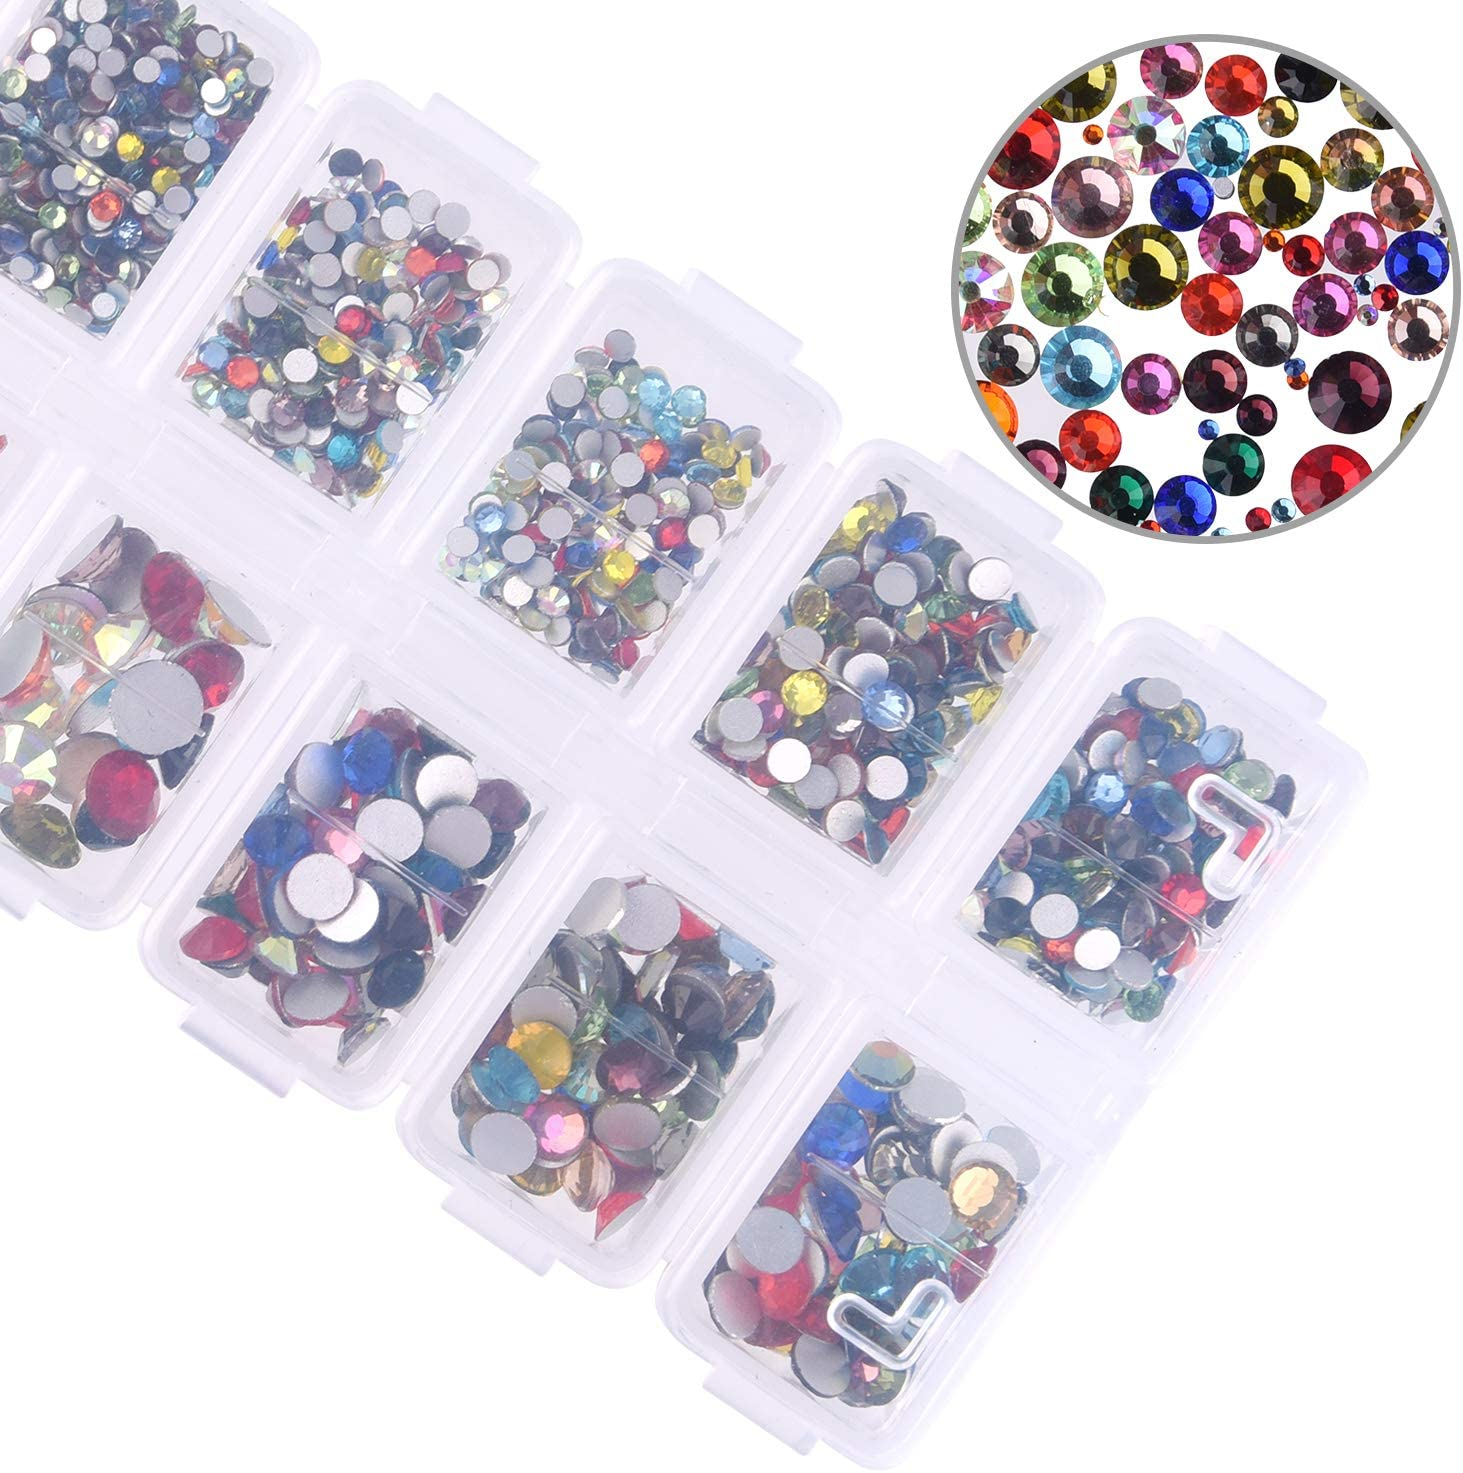 in Storage Box with Tweezers and Picking Rhinestones Pen SS4-SS30 Multicolor KUUQA 2000 Pieces Hot Fix Glass Flatback Rhinestones HotFix Round Crystal Gems 1.5-6 MM